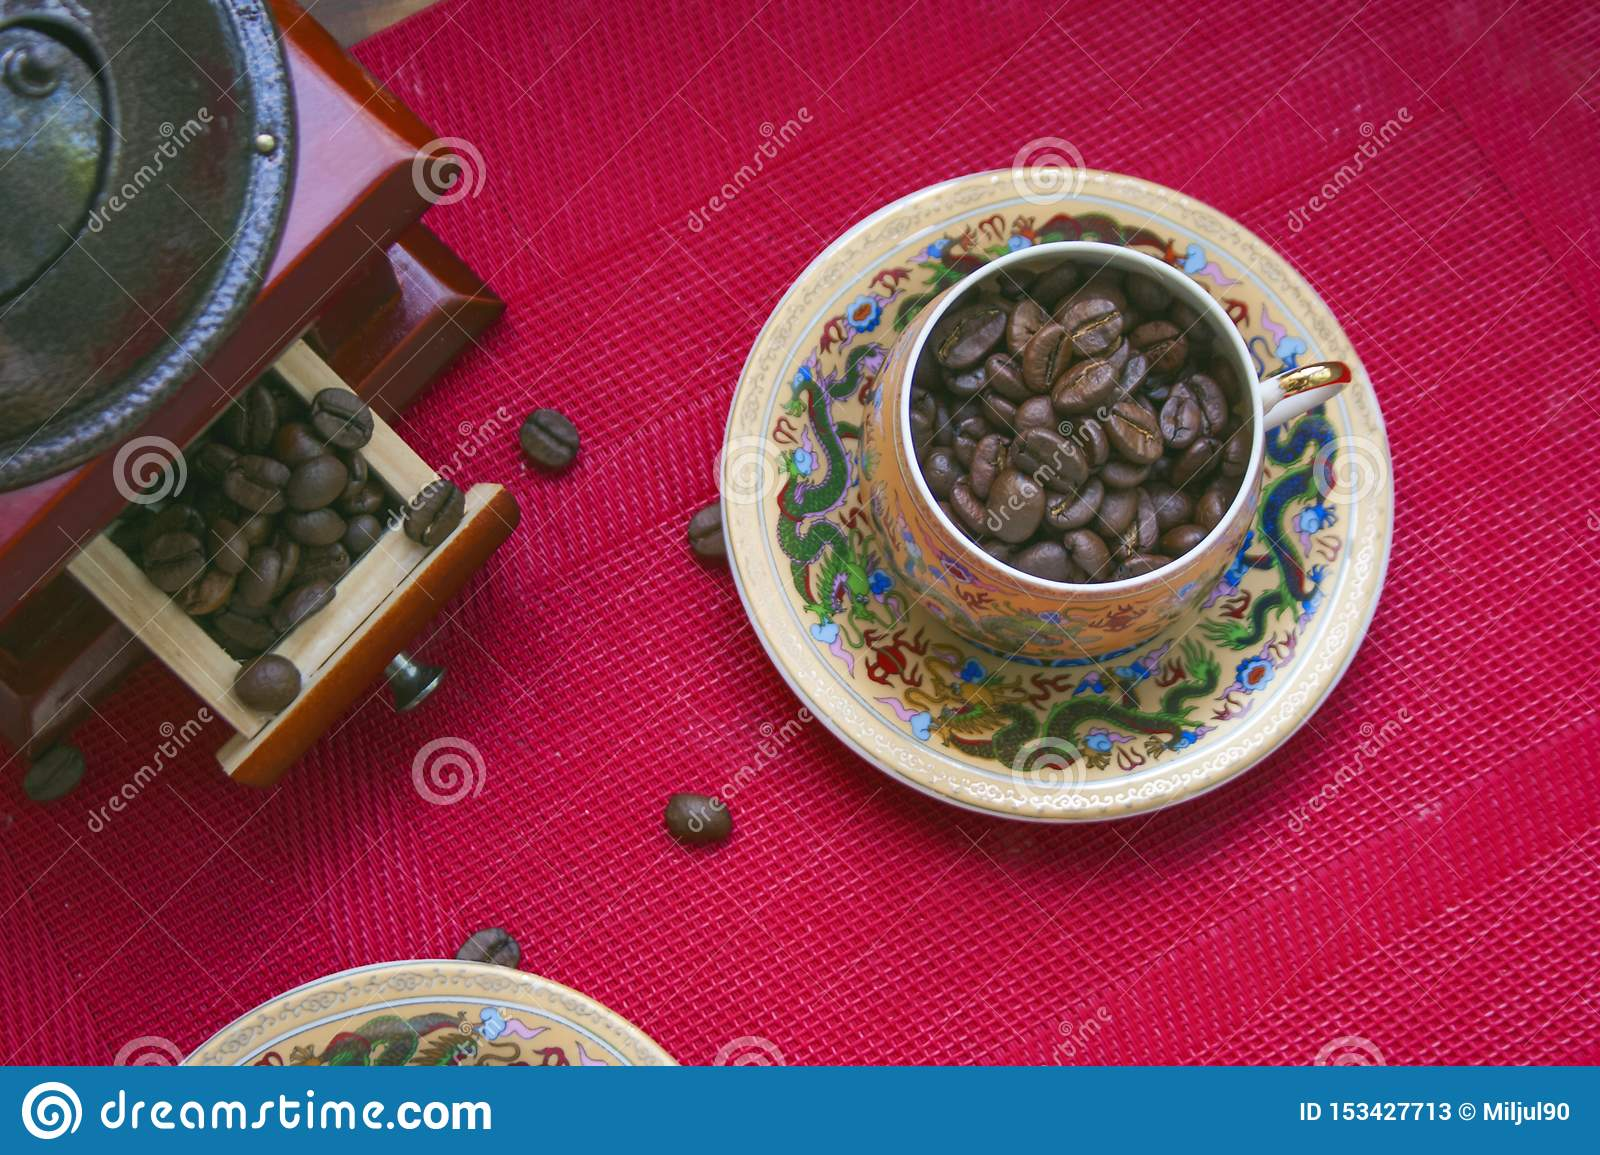 Coffee beans in a cup with a pattern